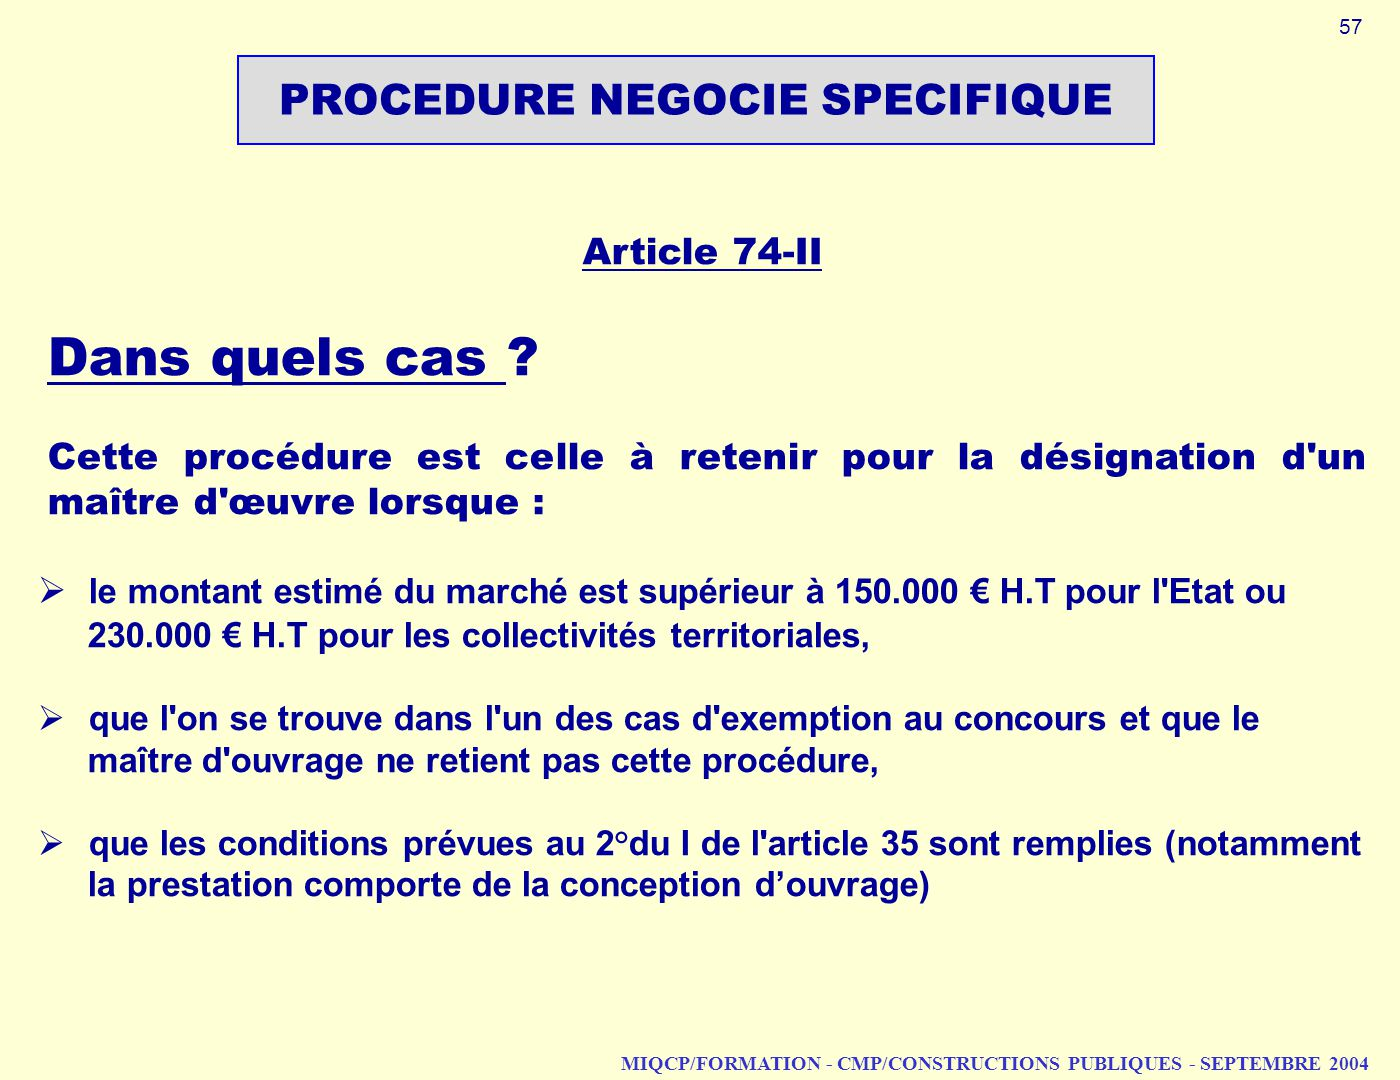 MIQCP/FORMATION - CMP/CONSTRUCTIONS PUBLIQUES - SEPTEMBRE 2004 PROCEDURE NEGOCIE SPECIFIQUE Article 74 II Dans quels cas .